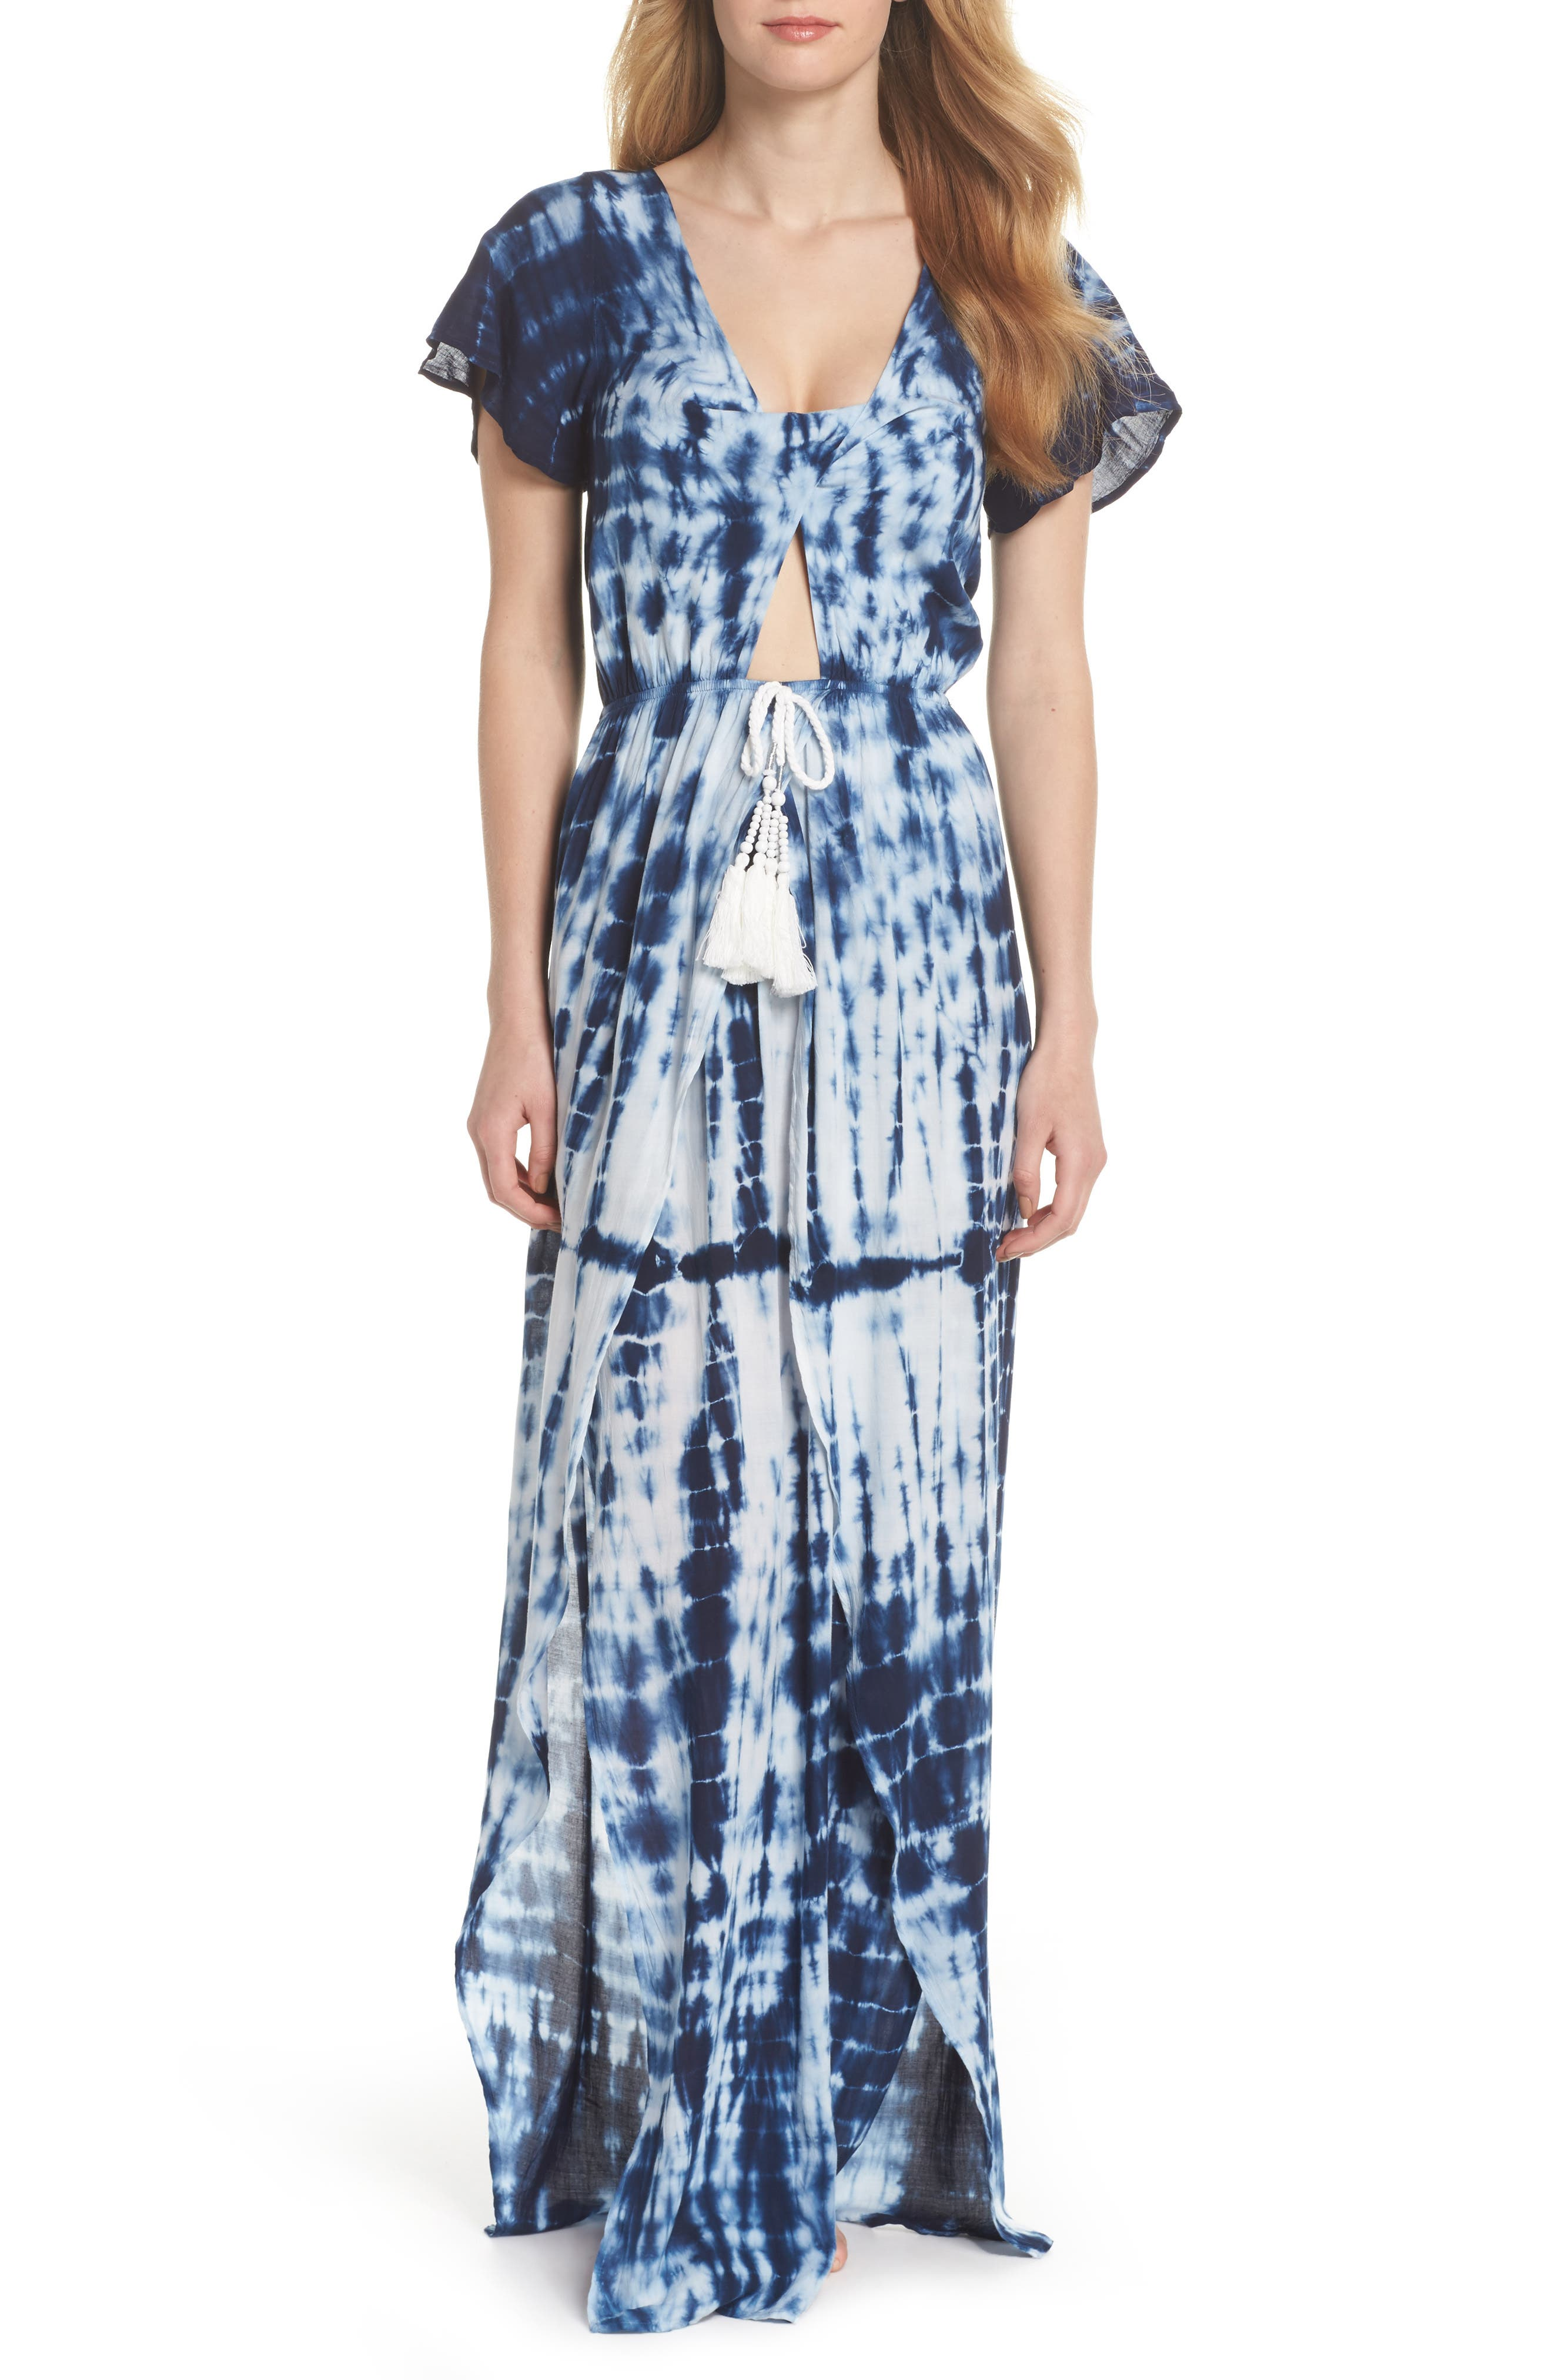 Surf Gypsy Tie Dye Cover Up